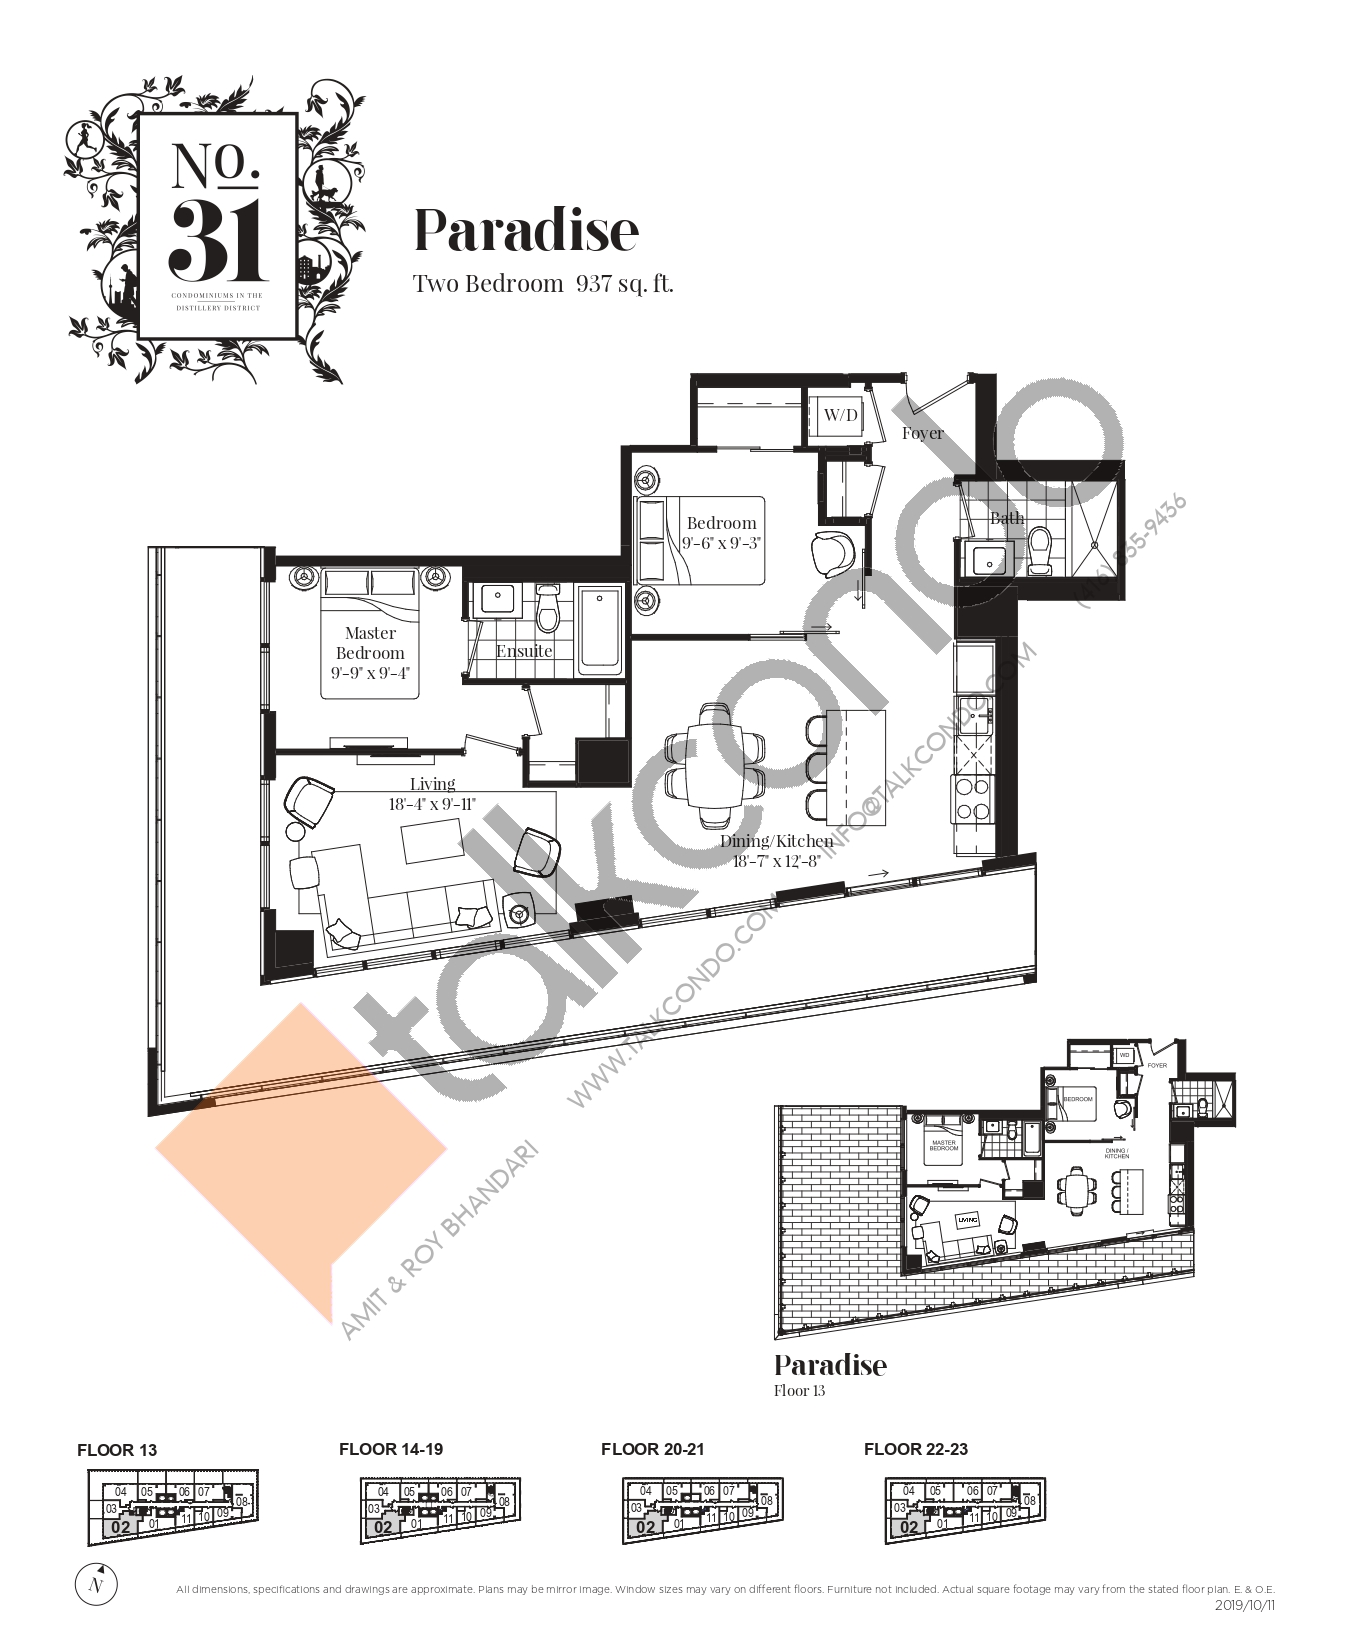 Paradise Floor Plan at No. 31 Condos - 937 sq.ft